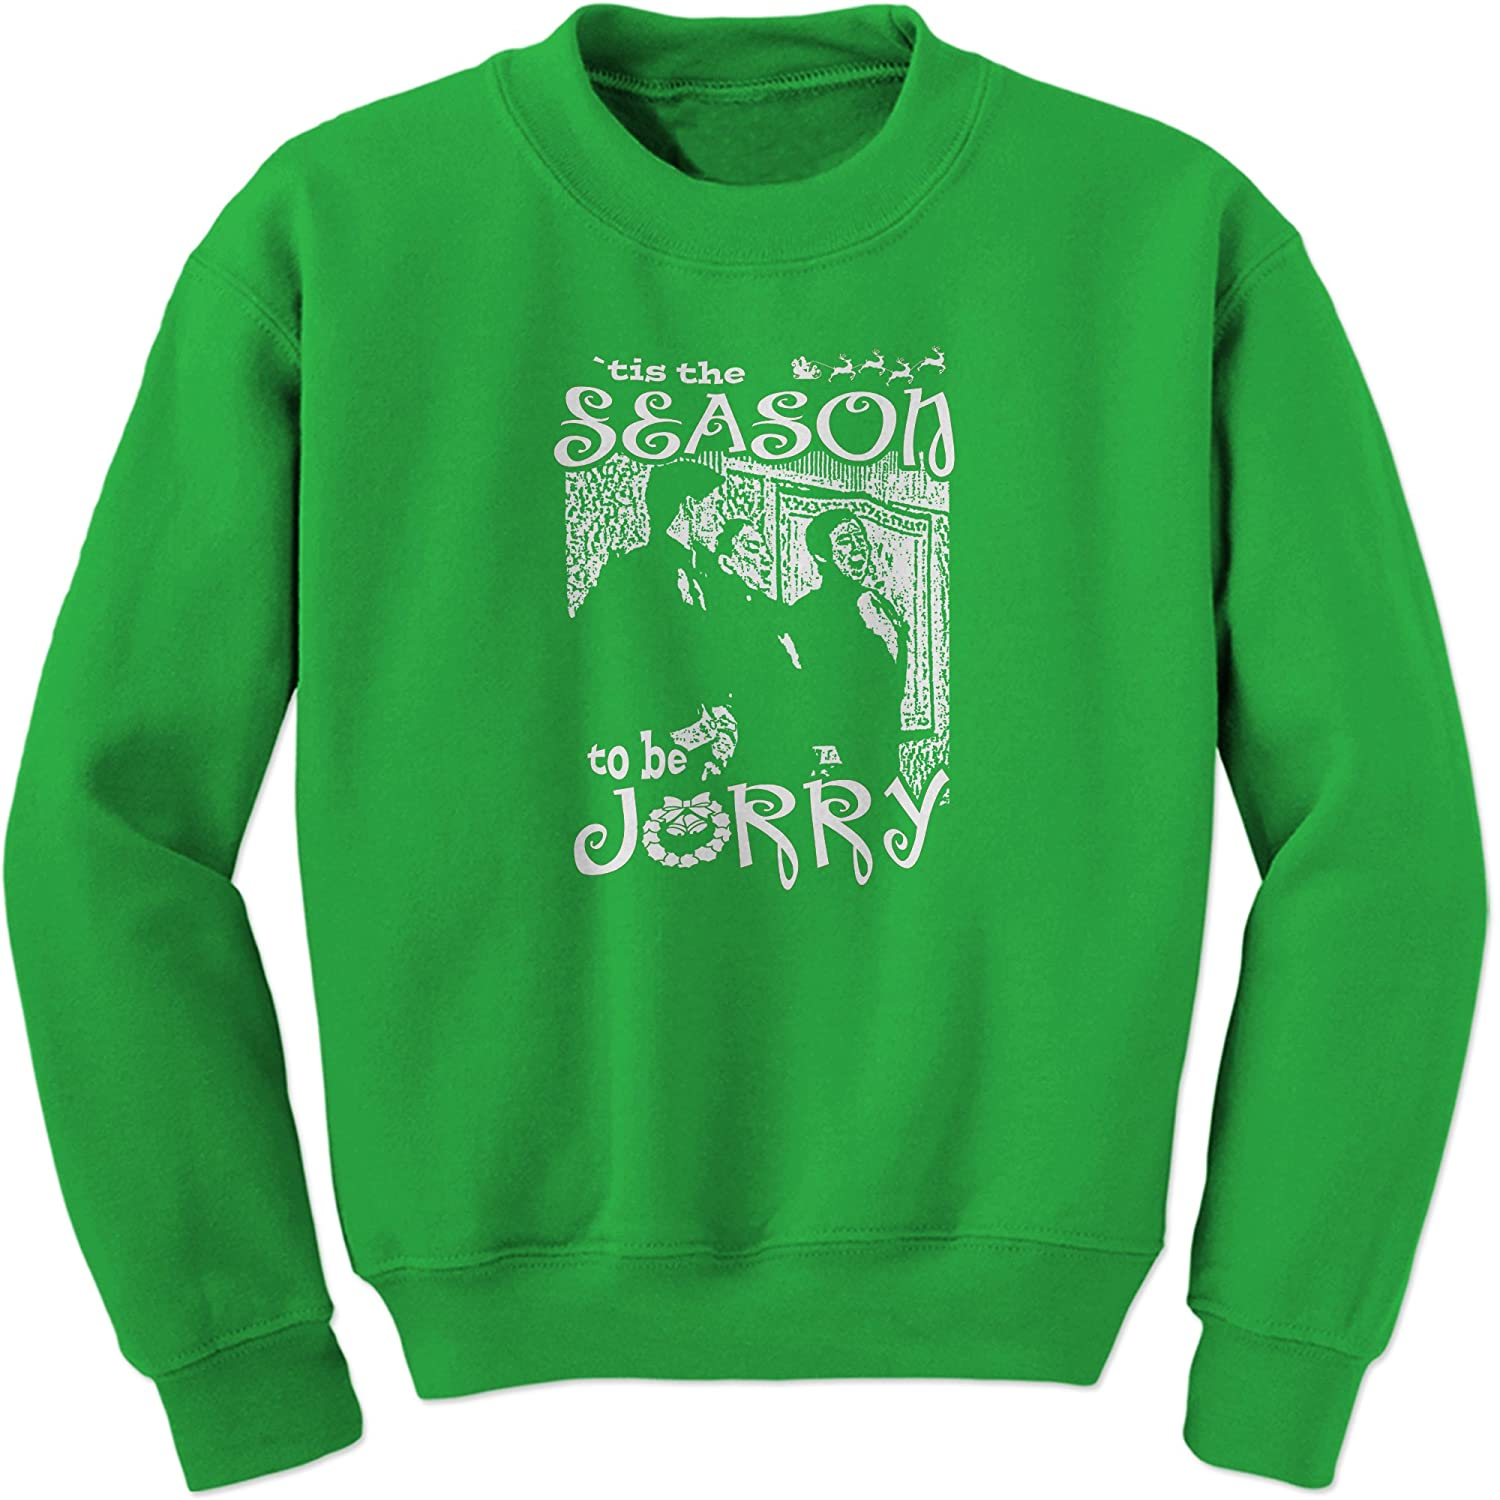 FerociTees A Christmas Story Tis The Season to be Jorry Crewneck Sweatshirt